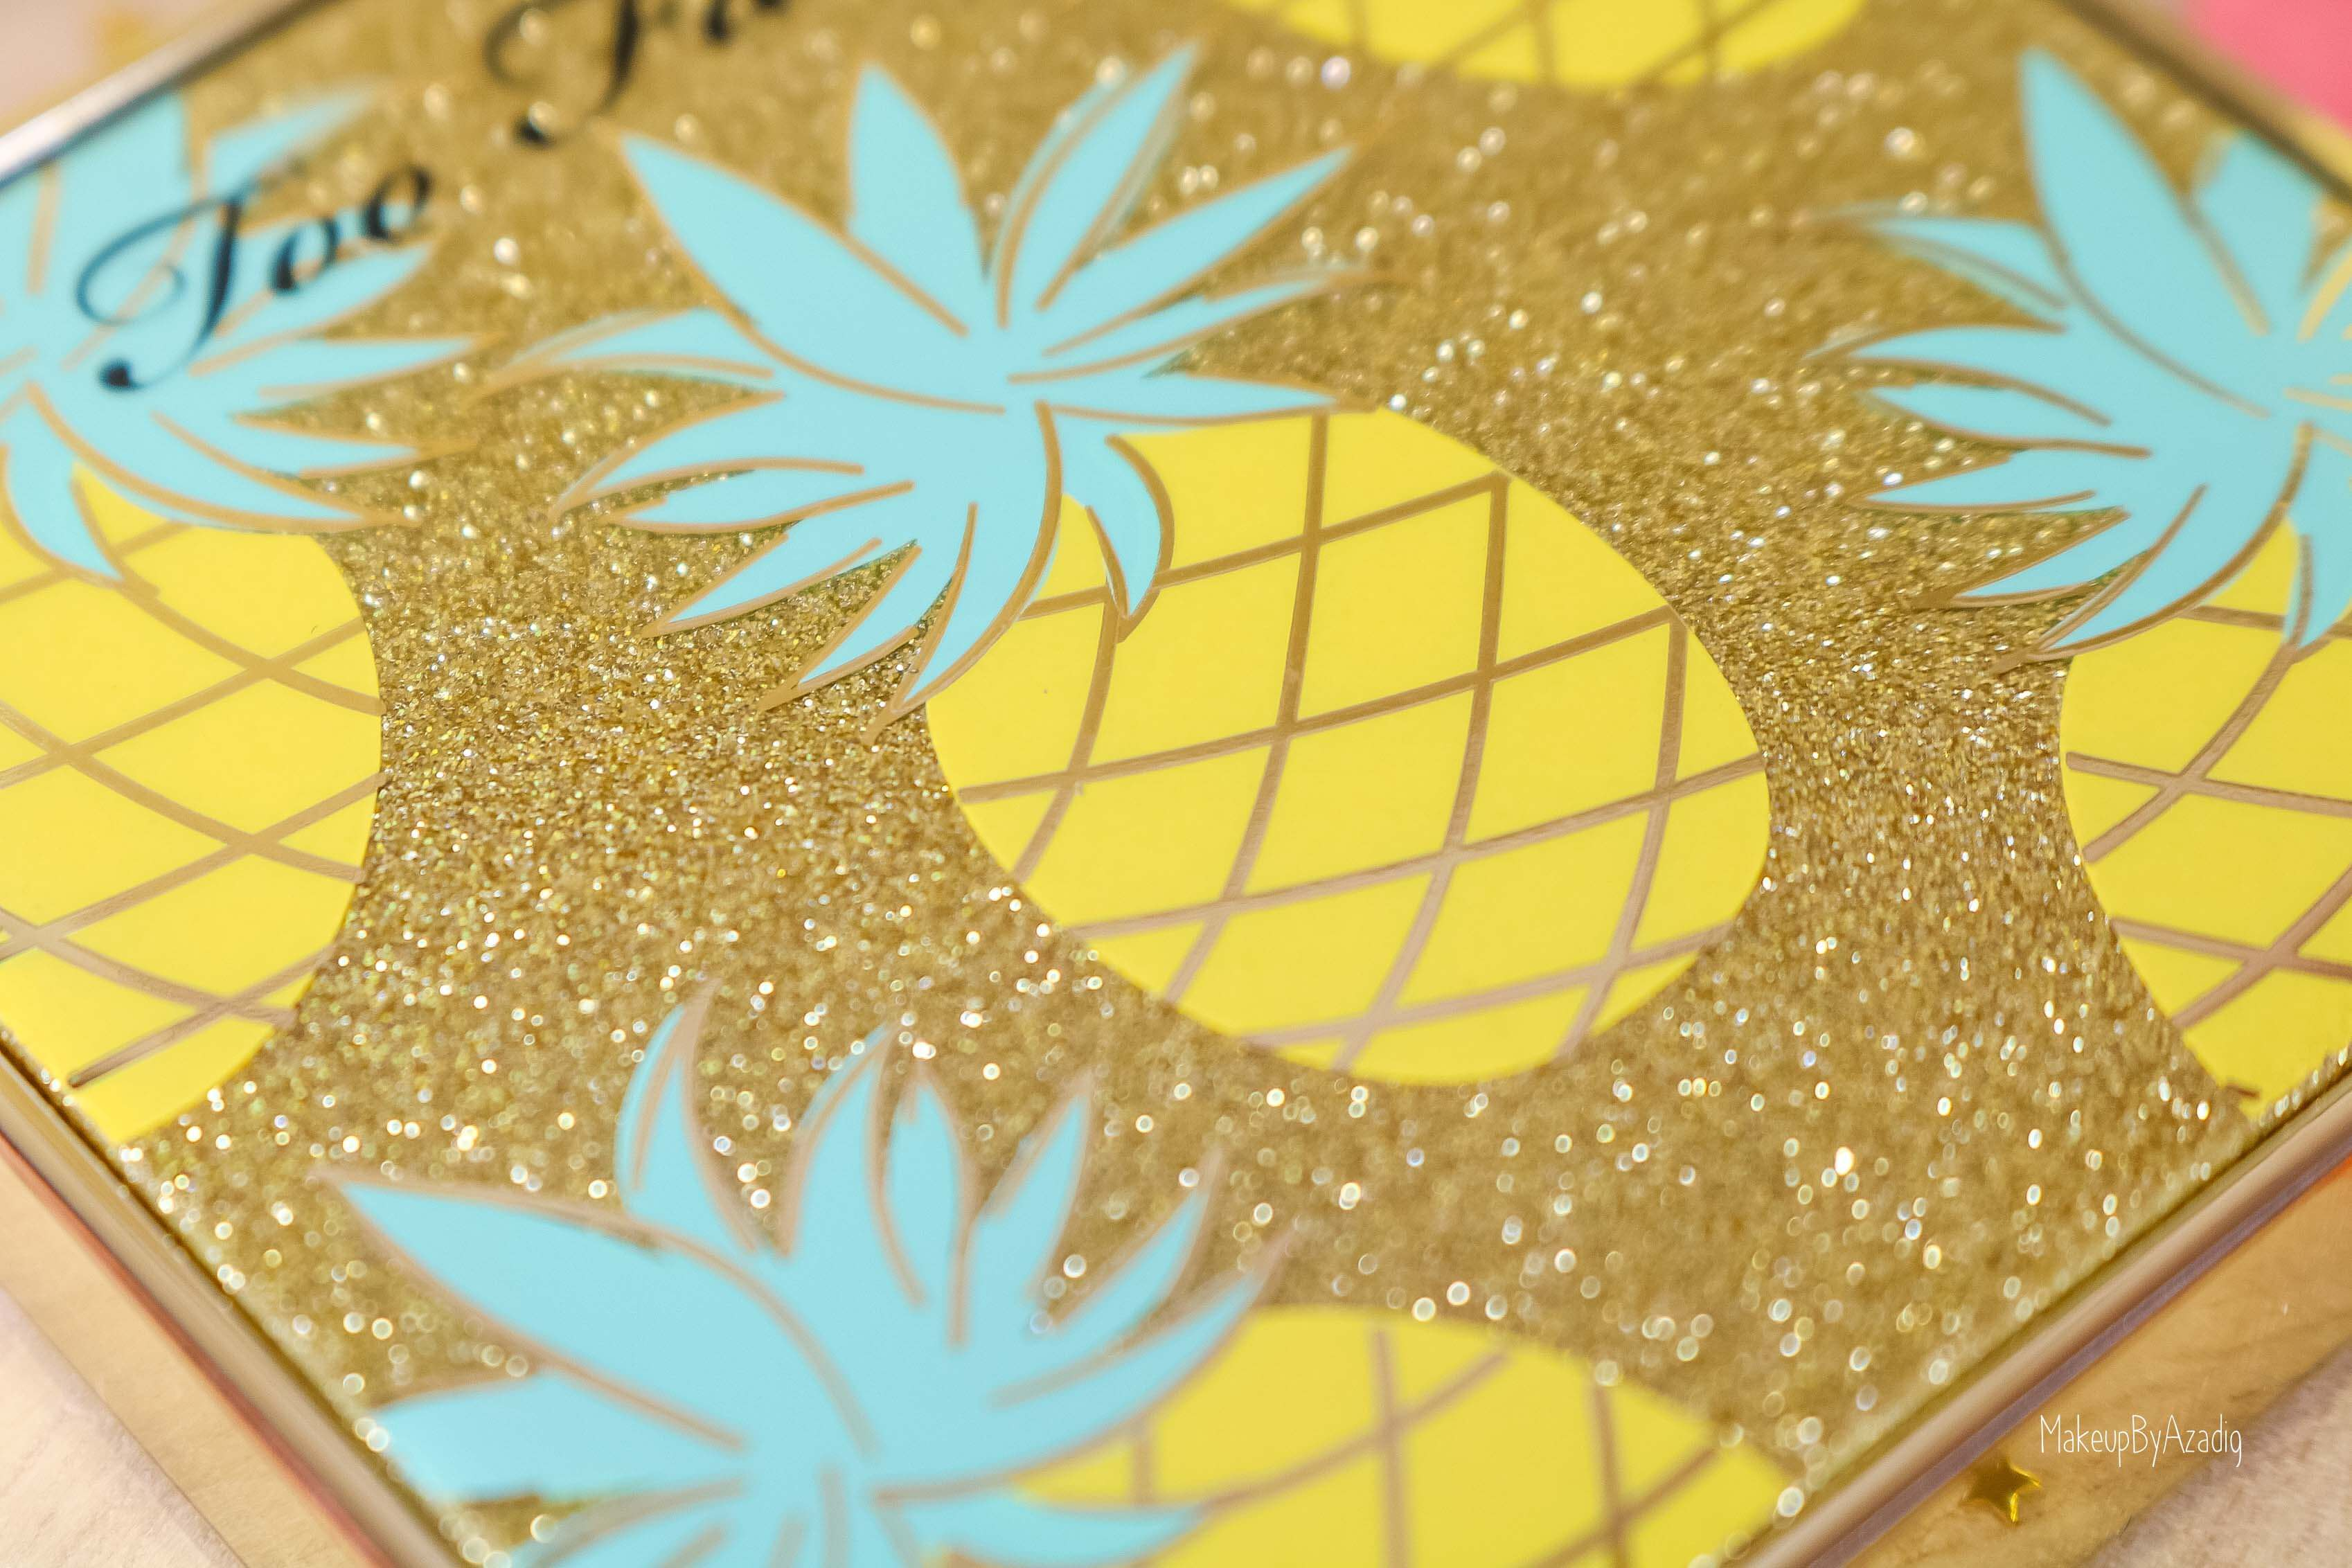 revue-collection-tutti-frutti-too-faced-bronzeur-highlighter-pineapple-paradise-sun-sephora-france-makeupbyazadig-swatch-avis-prix-ananas-zoom